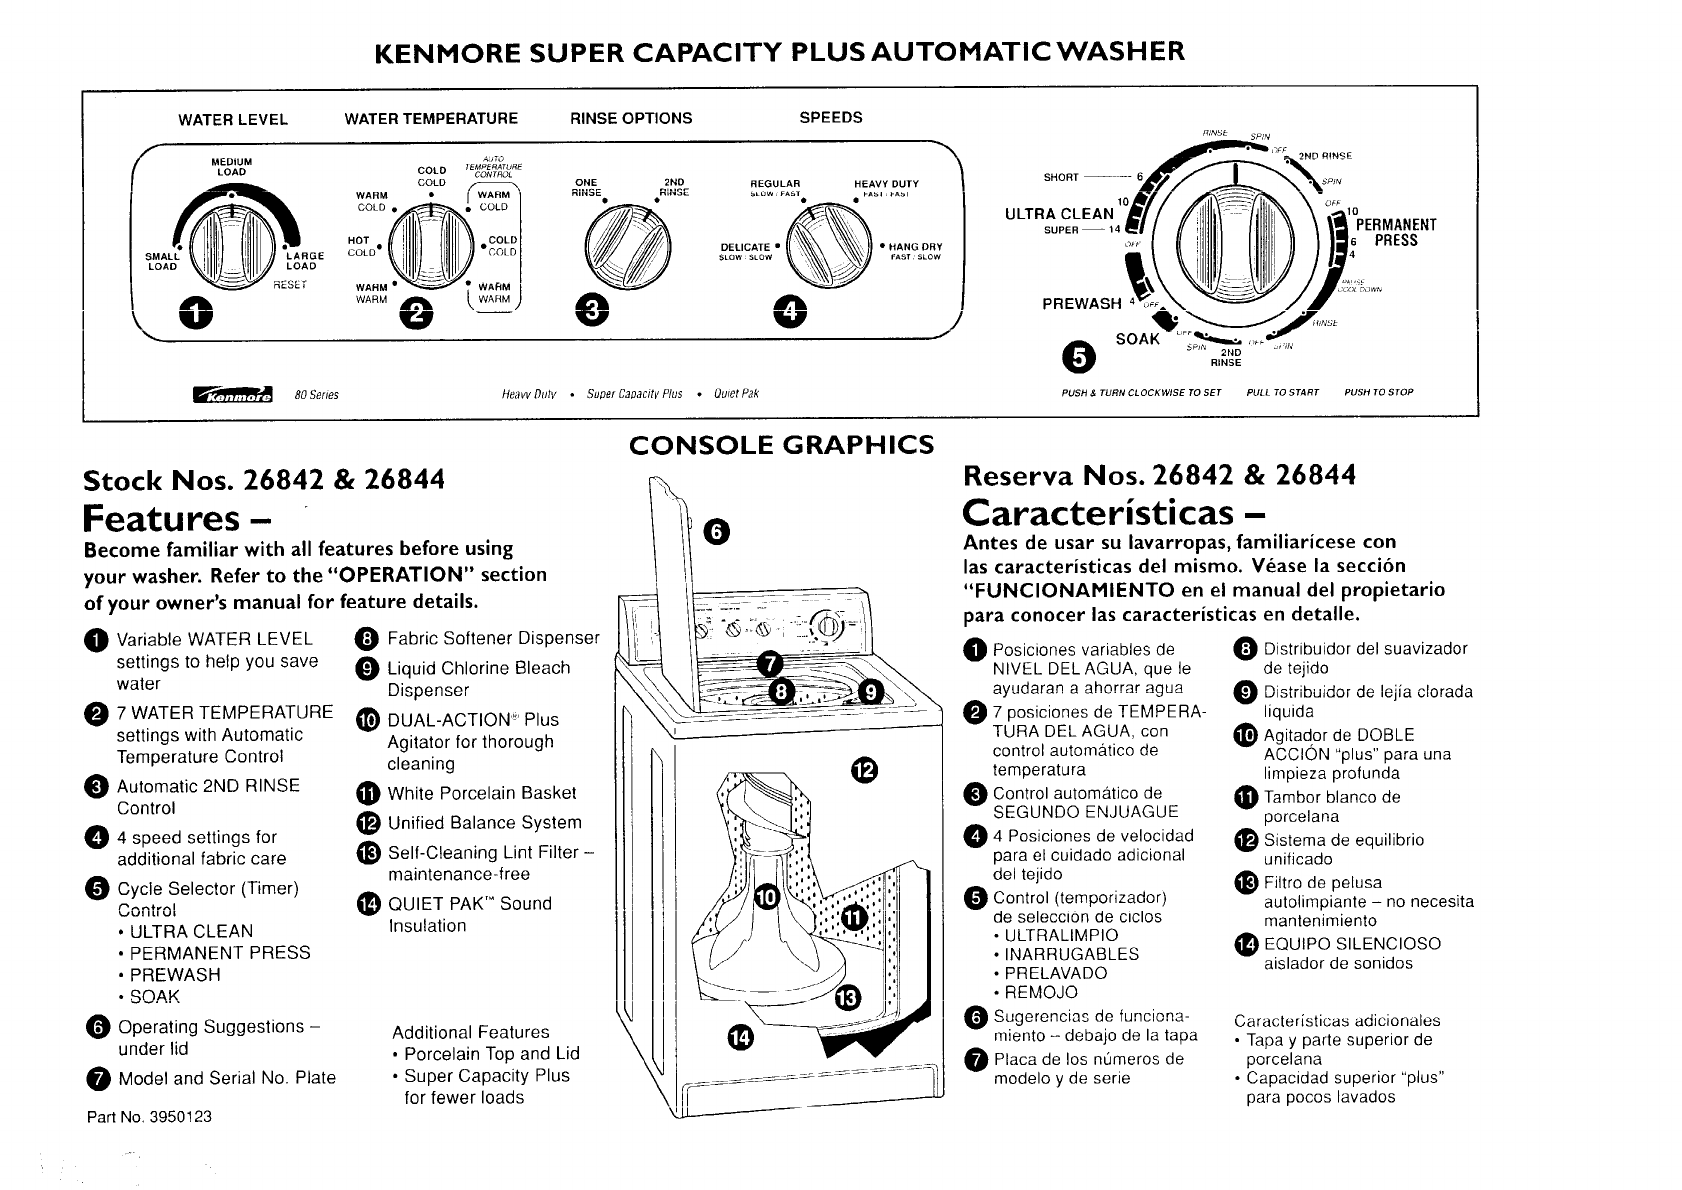 kenmore 800 dryer wiring diagram images kenmore 800 dryer parts kenmore dryer model 110 lg washer parts control board